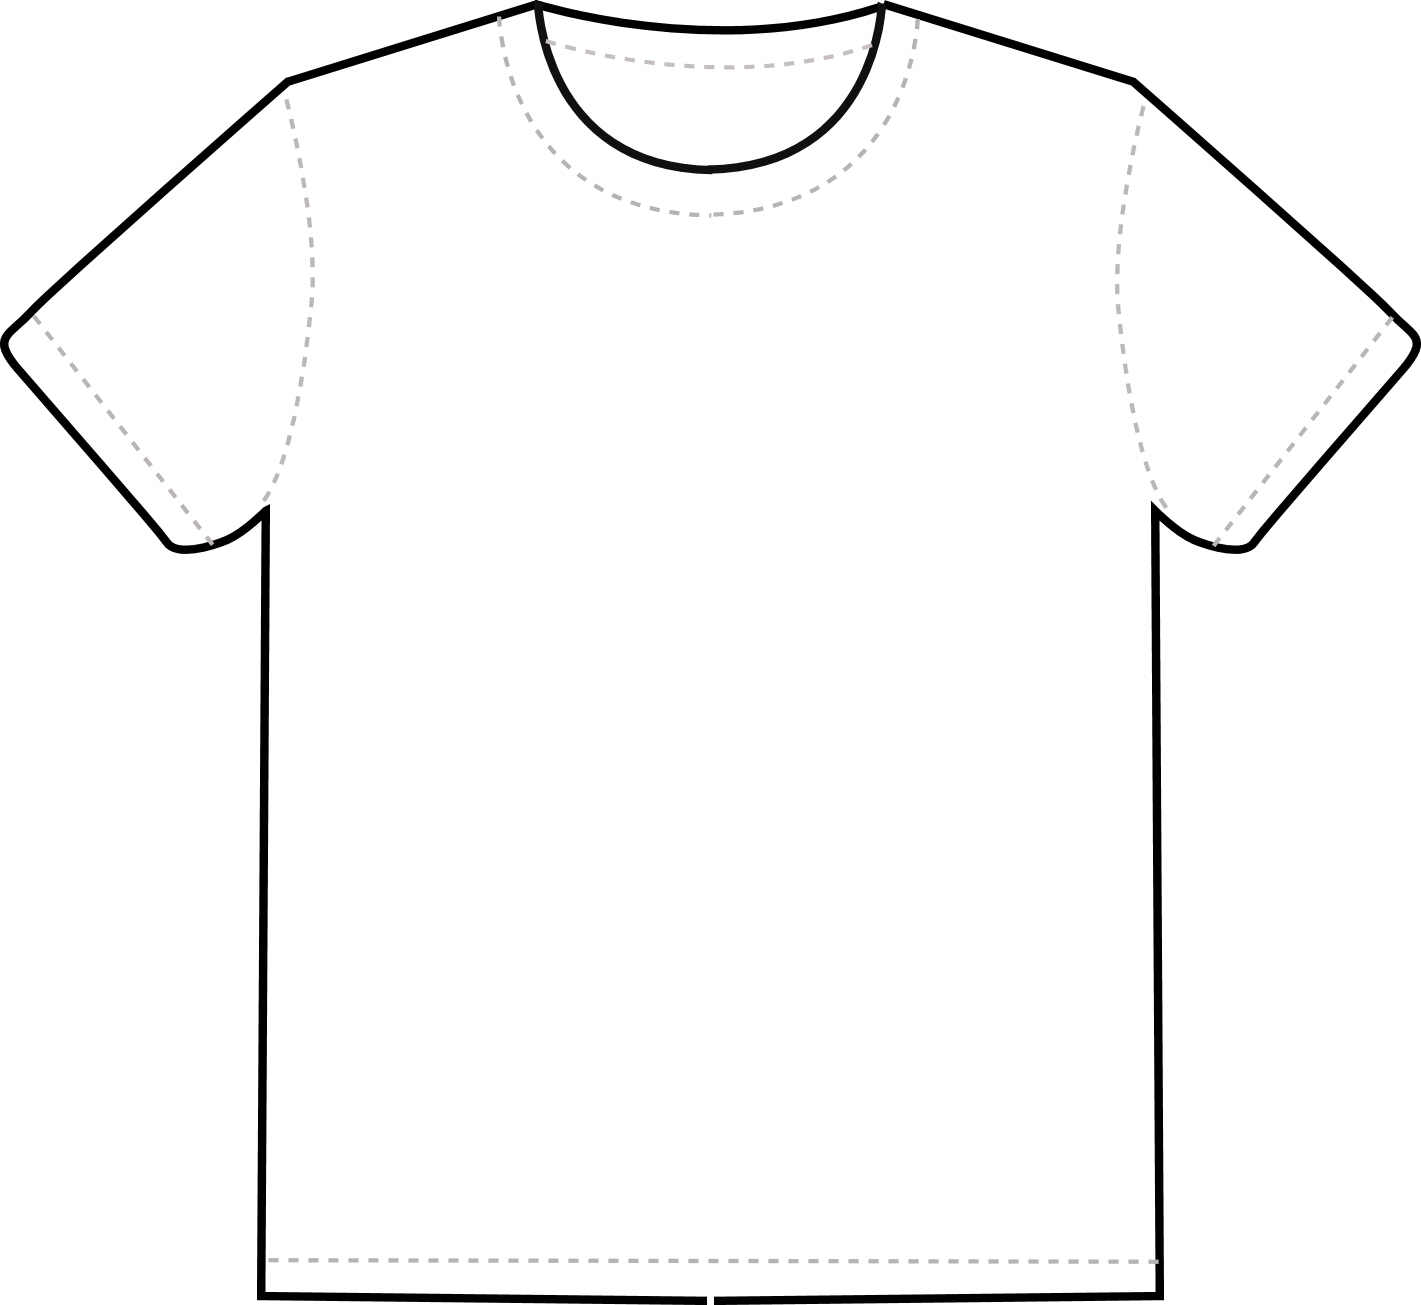 Free T Shirt Template Printable, Download Free Clip Art ... image royalty free stock